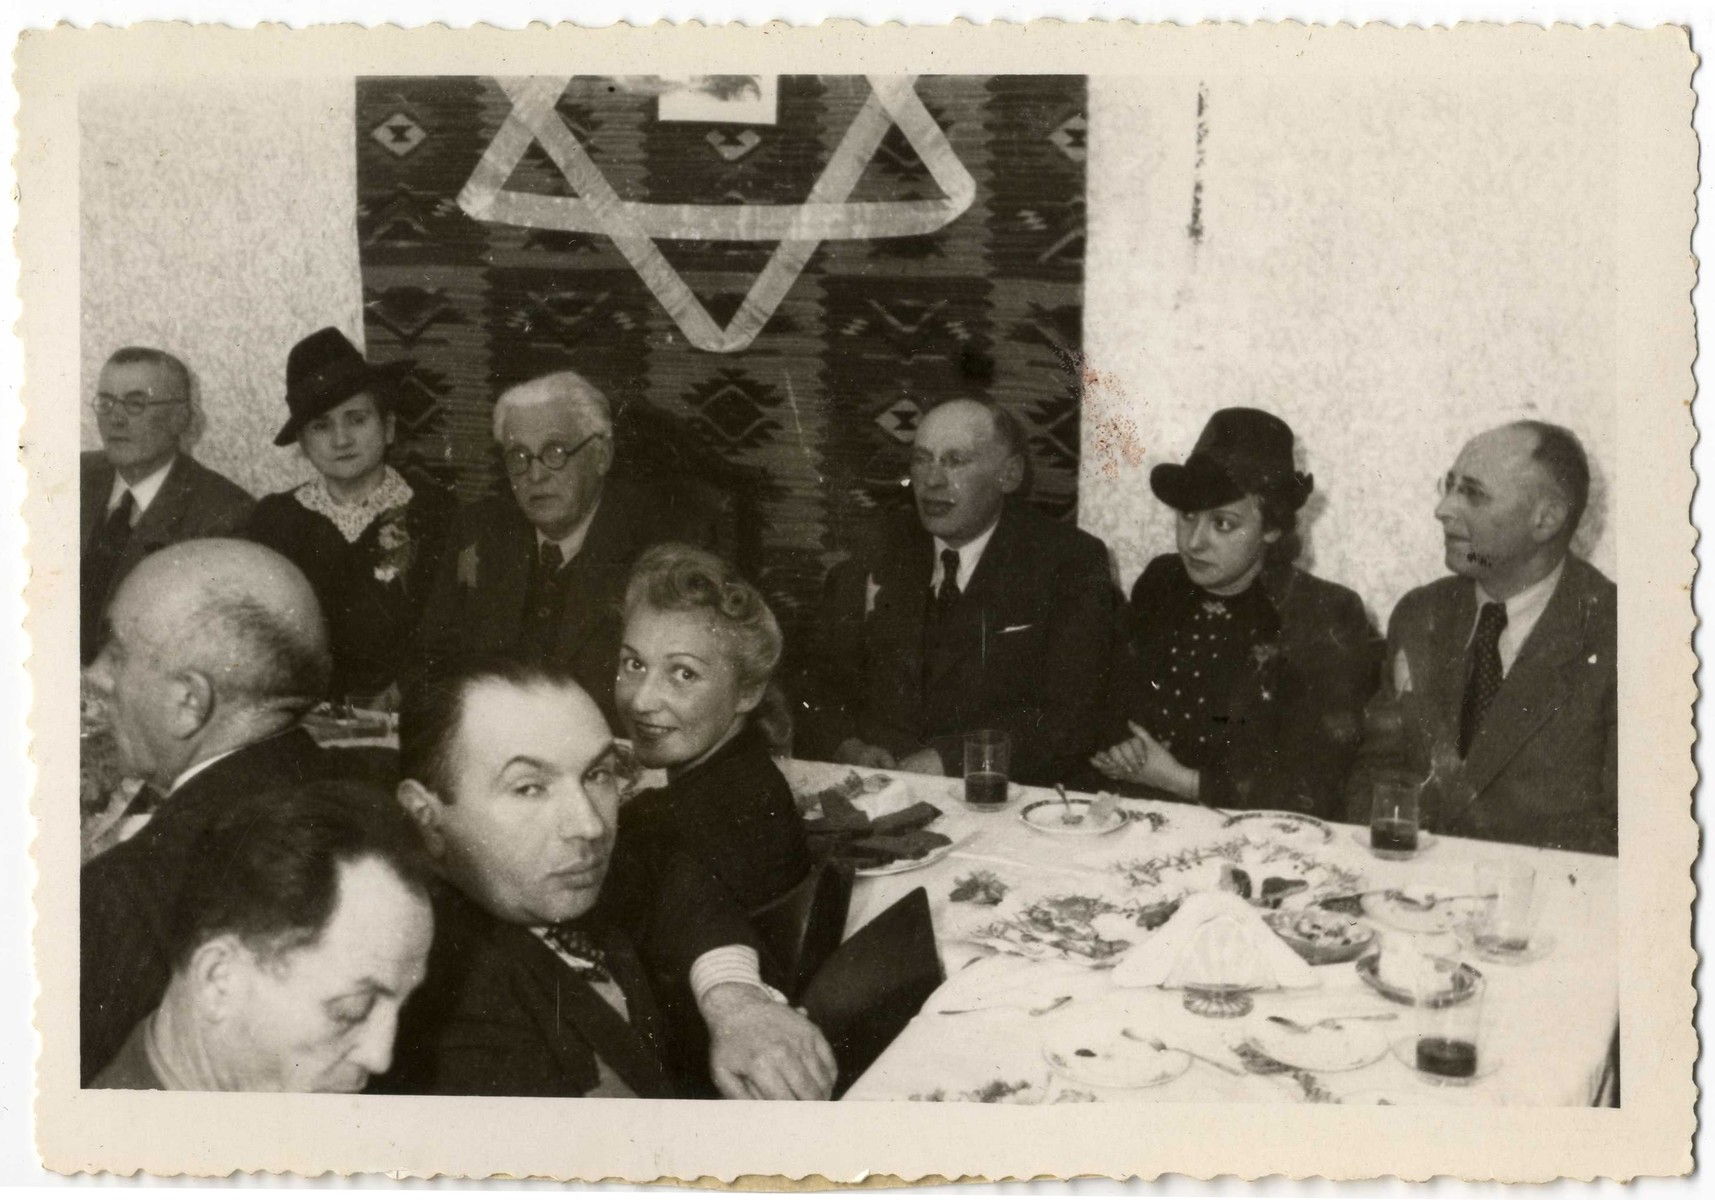 Ghetto officials gather for a festive meal in front of a wall hanging with a large Jewish star.  Seated in the center of the table is Chairman, Mordechai Chaim Rumkowski.  To his left is his sister-in-law Helena Rumkowski.  To his right are Dawid Warszawski and Dora Fuks.